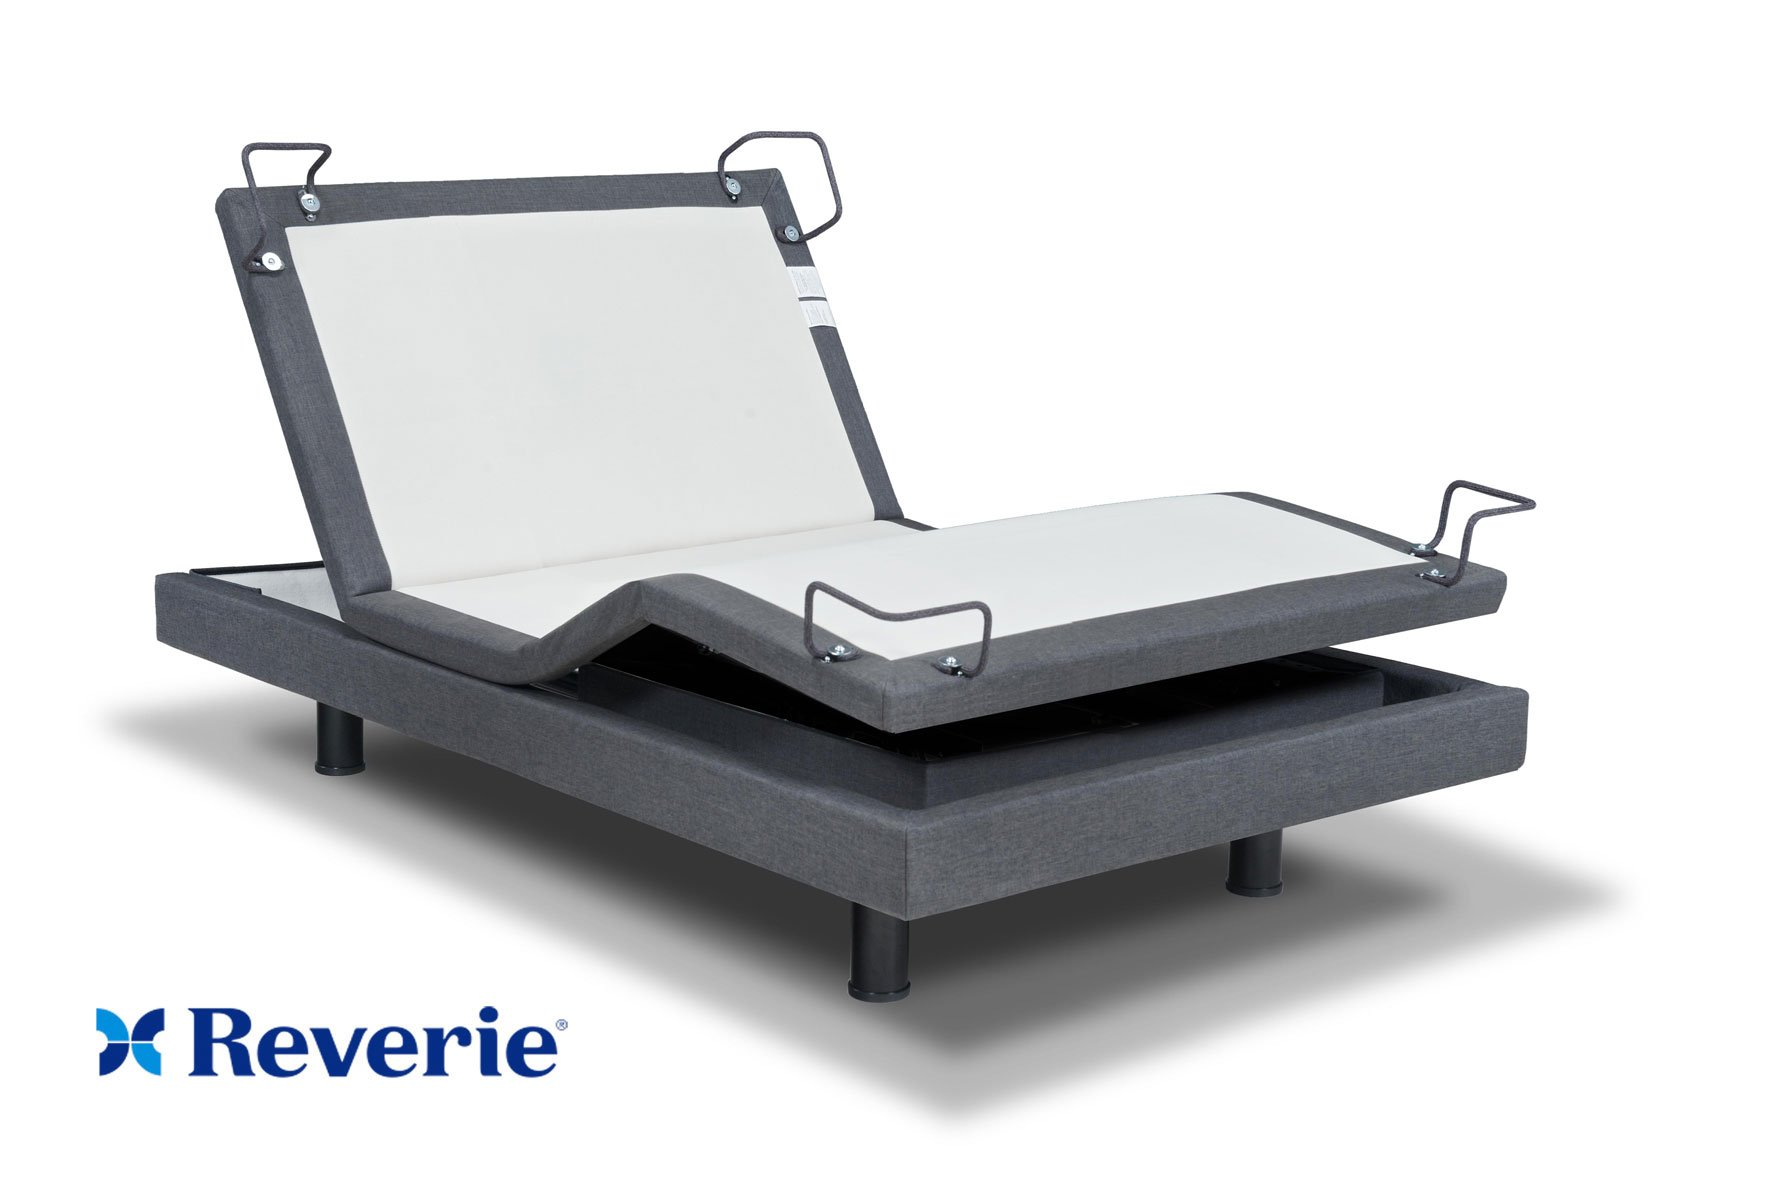 Reverie 7S Adjustable Bed From The Makers Of The Tempurpedic Ergo W/ Bluetooth Option (Twin Xl)